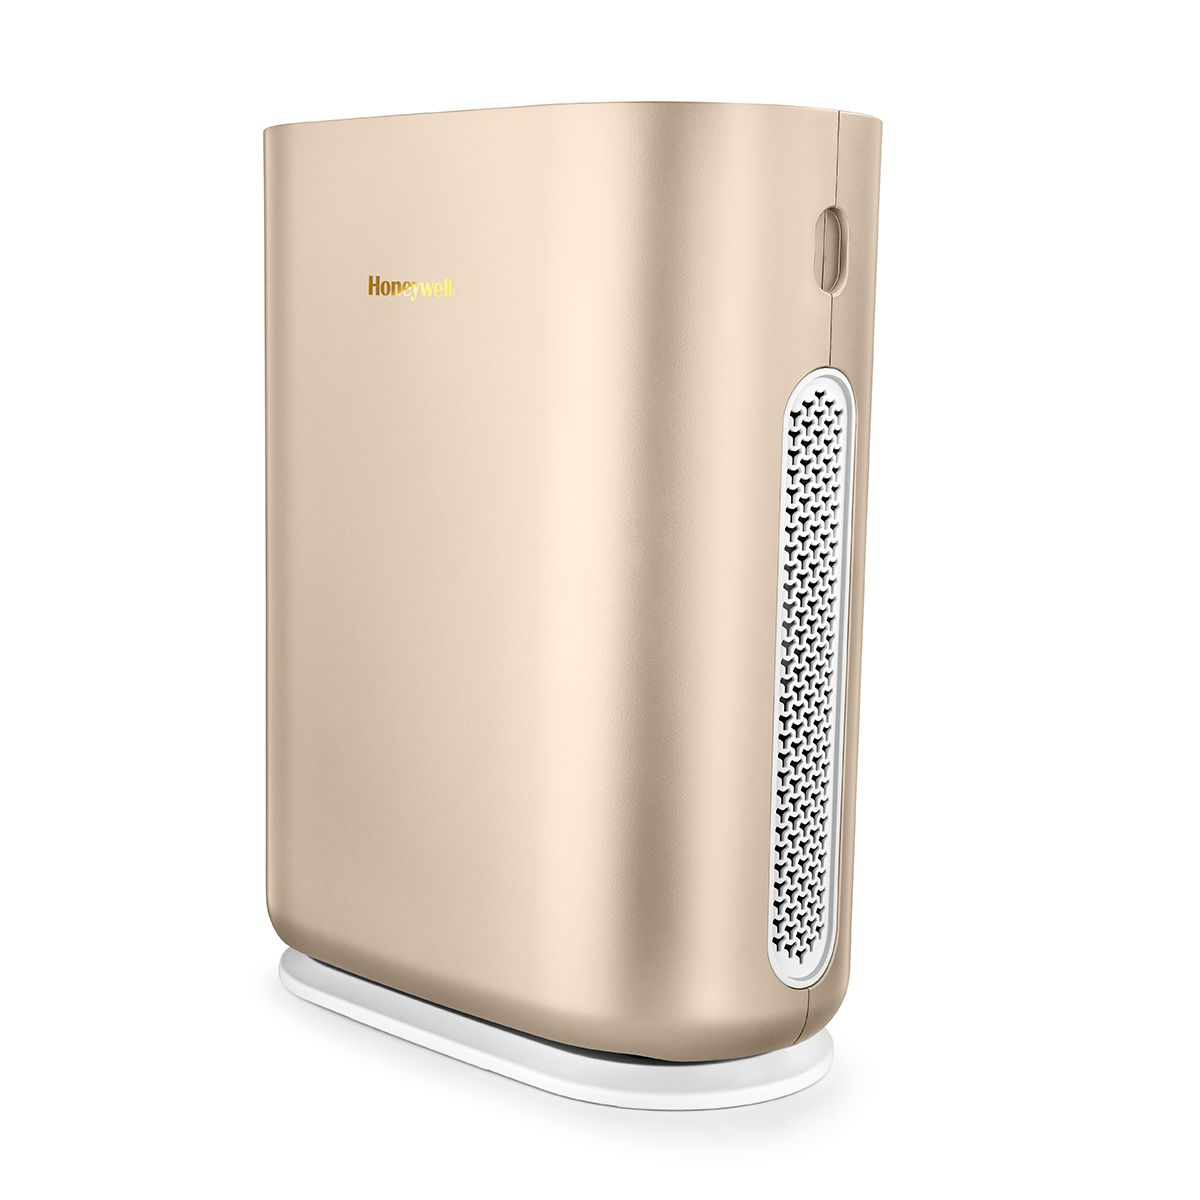 Honeywell Air Touch I9 Smart Technology That Senses The Pollution Level Inside The Room And Operates The Dev Air Purifier Honeywell Air Purifier Purifier